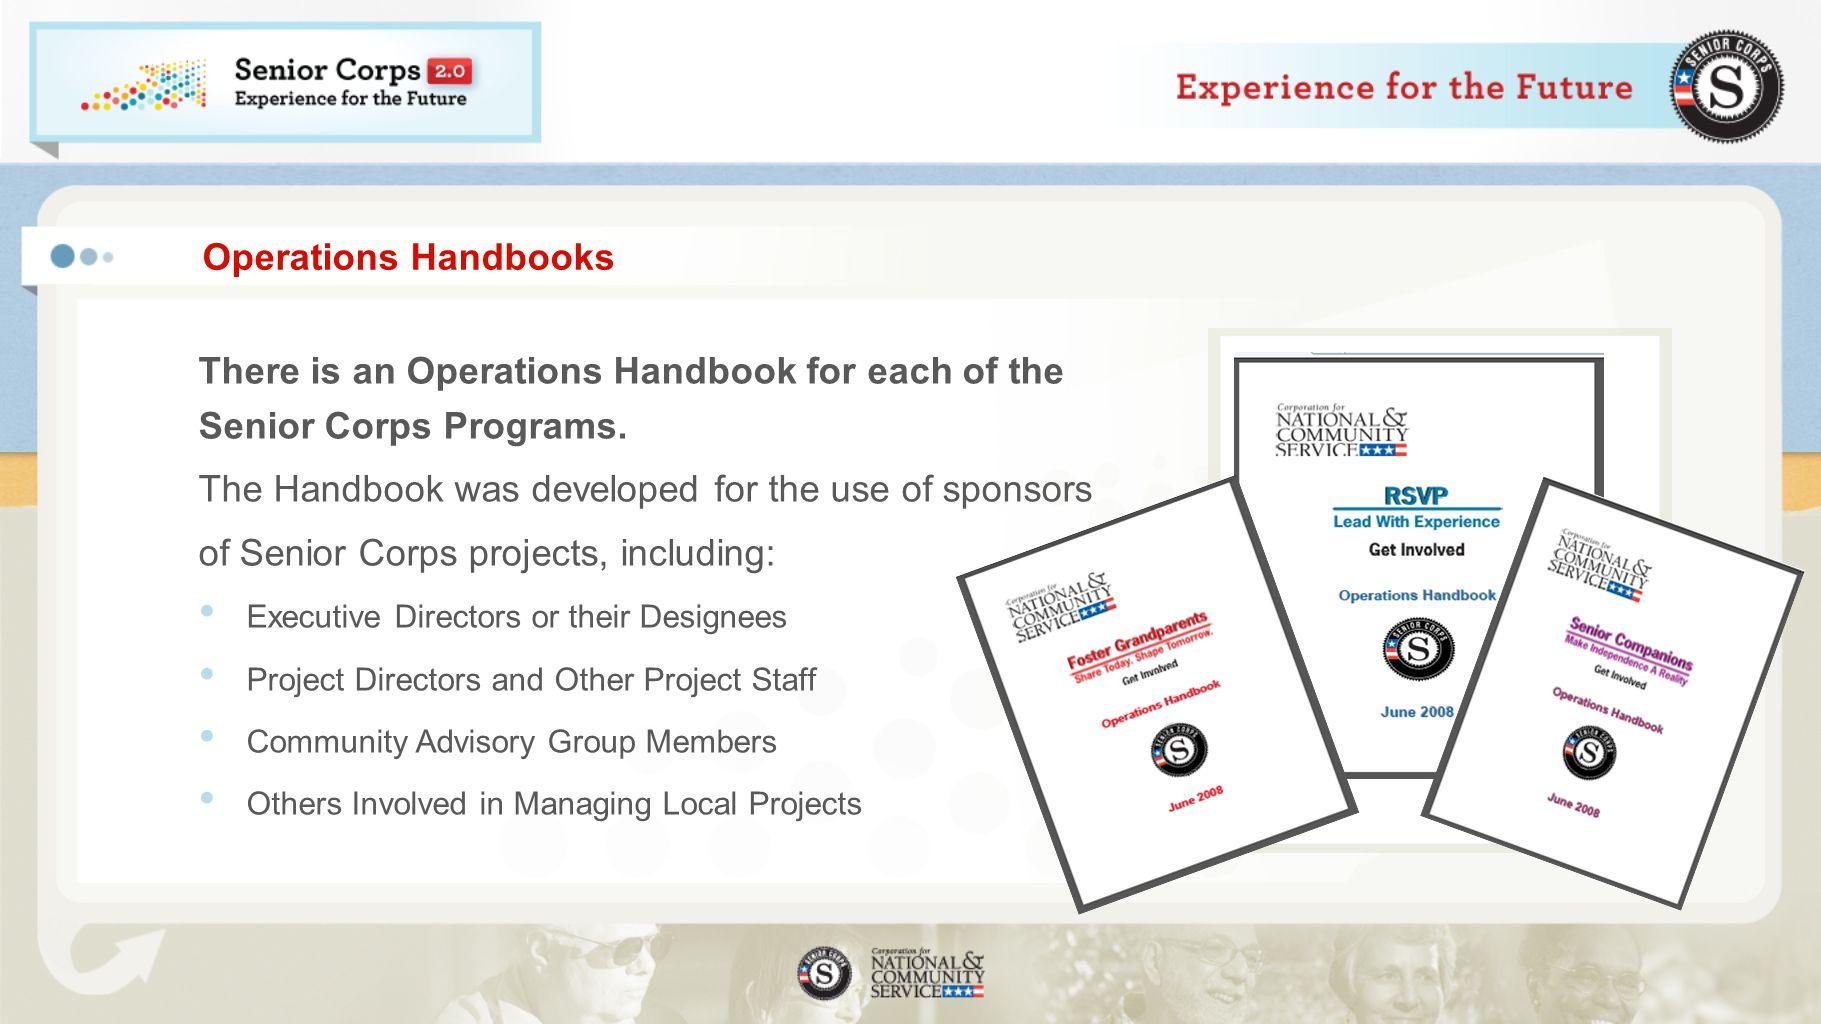 There is an Operations Handbook for each of the Senior Corps Programs.